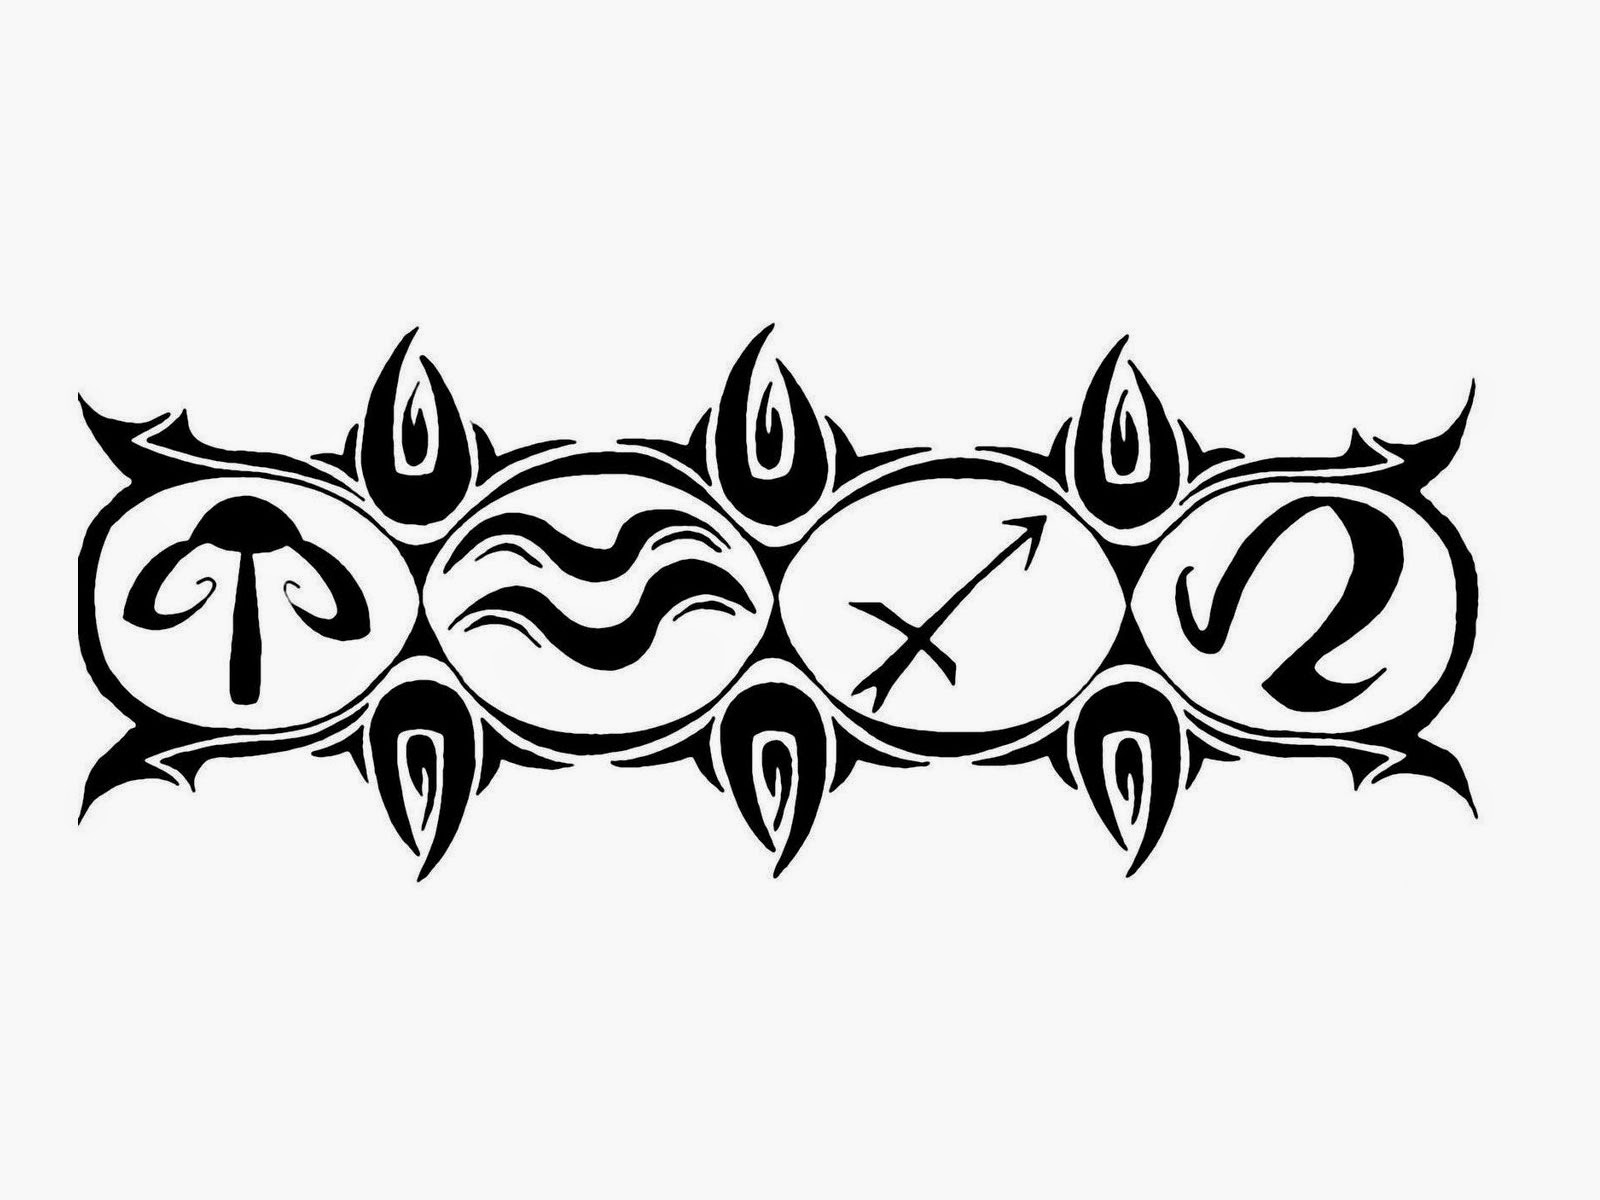 Armband Tattoo, Armband Tattoo Designs, Armband Tattoo Designs for Men, Zodiac Sign Armband Tattoo Designs